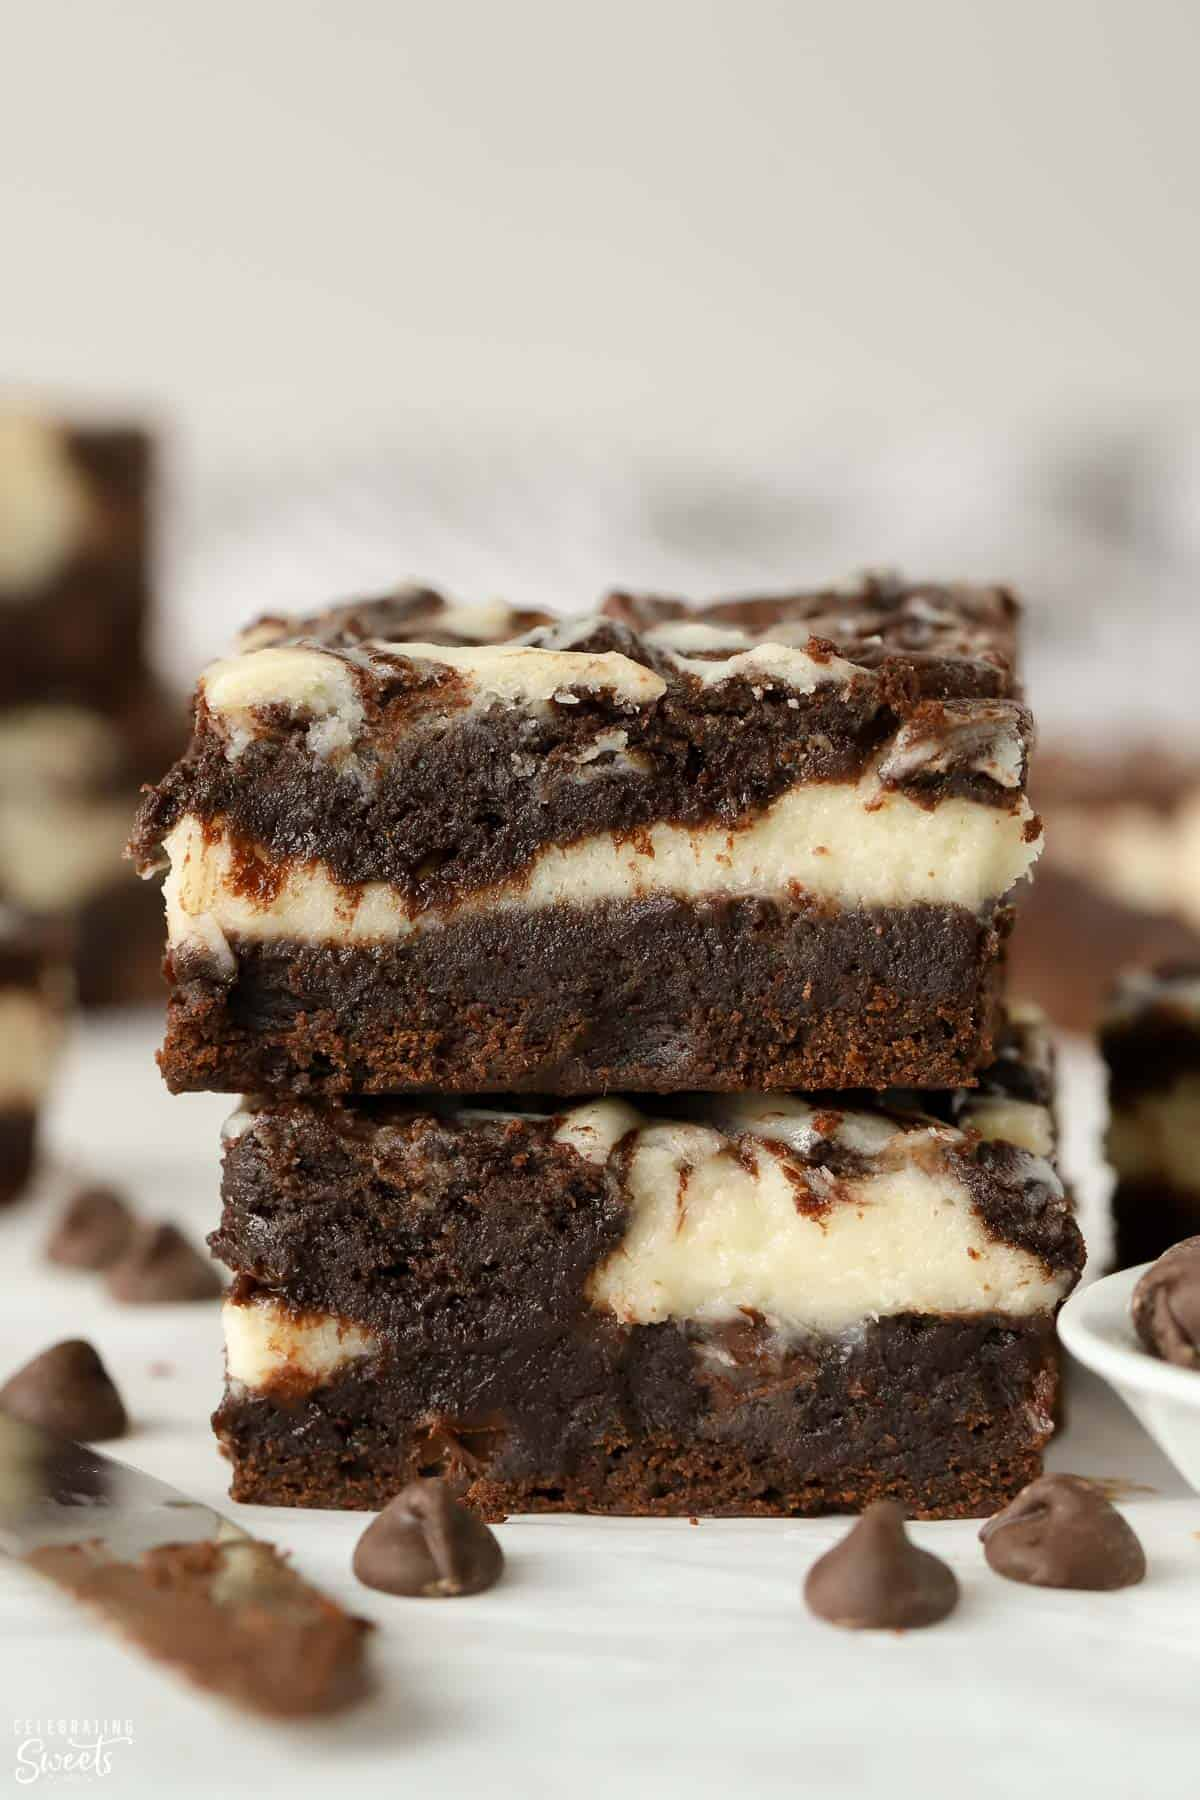 Stack of two cream cheese brownies on parchment paper.